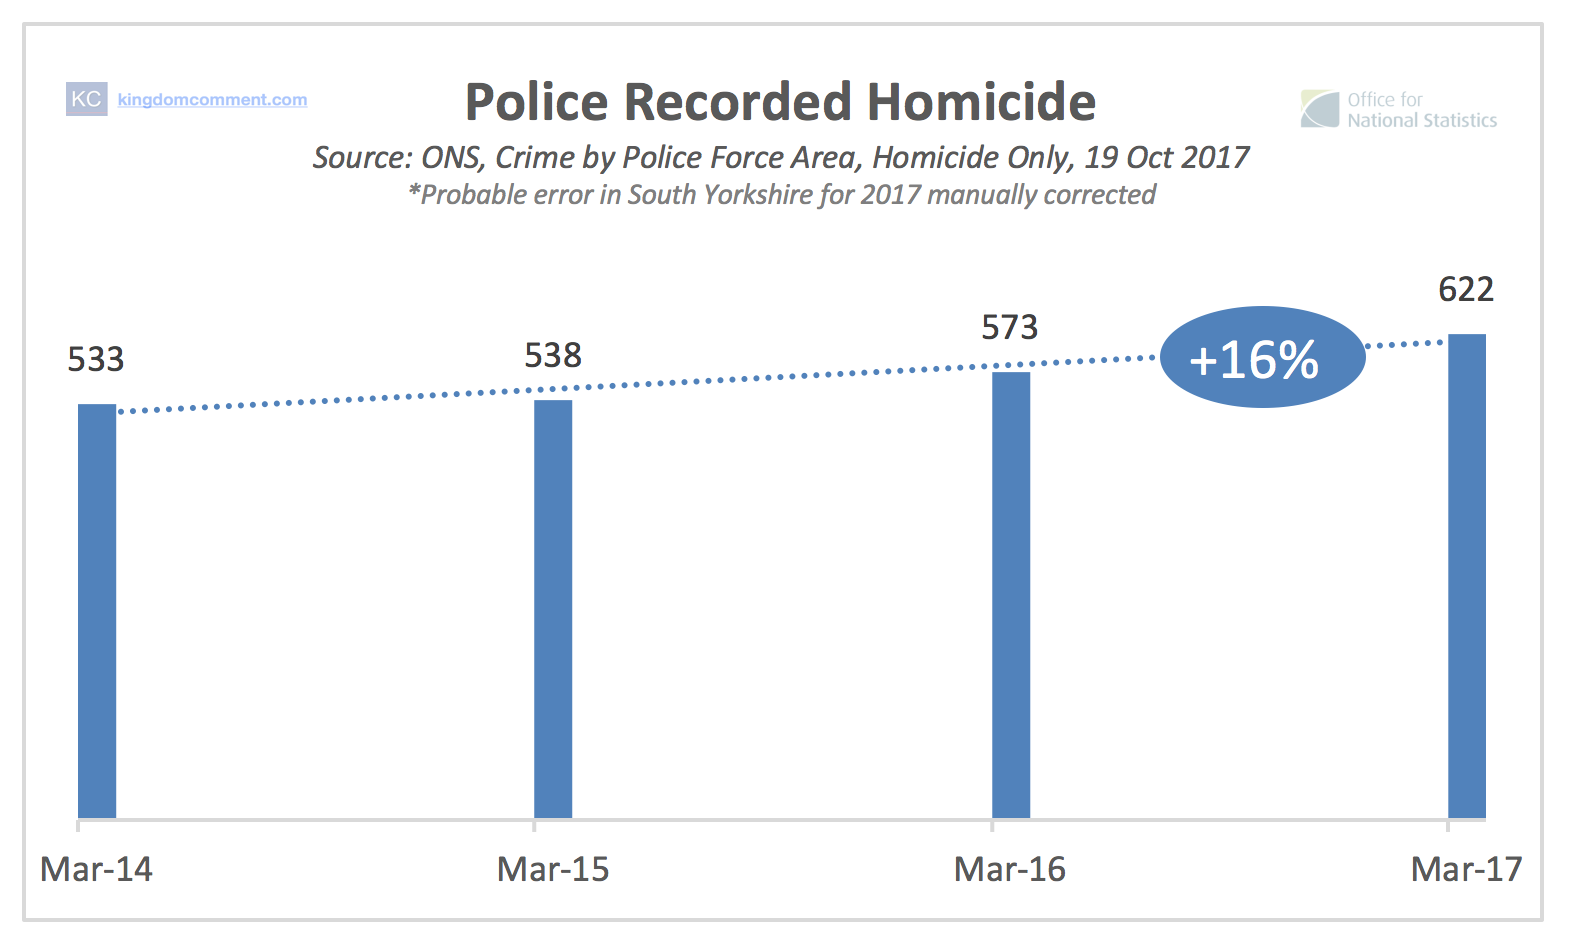 Police Recorded Homicide - amount recorded year ending March 2014 through 2017.